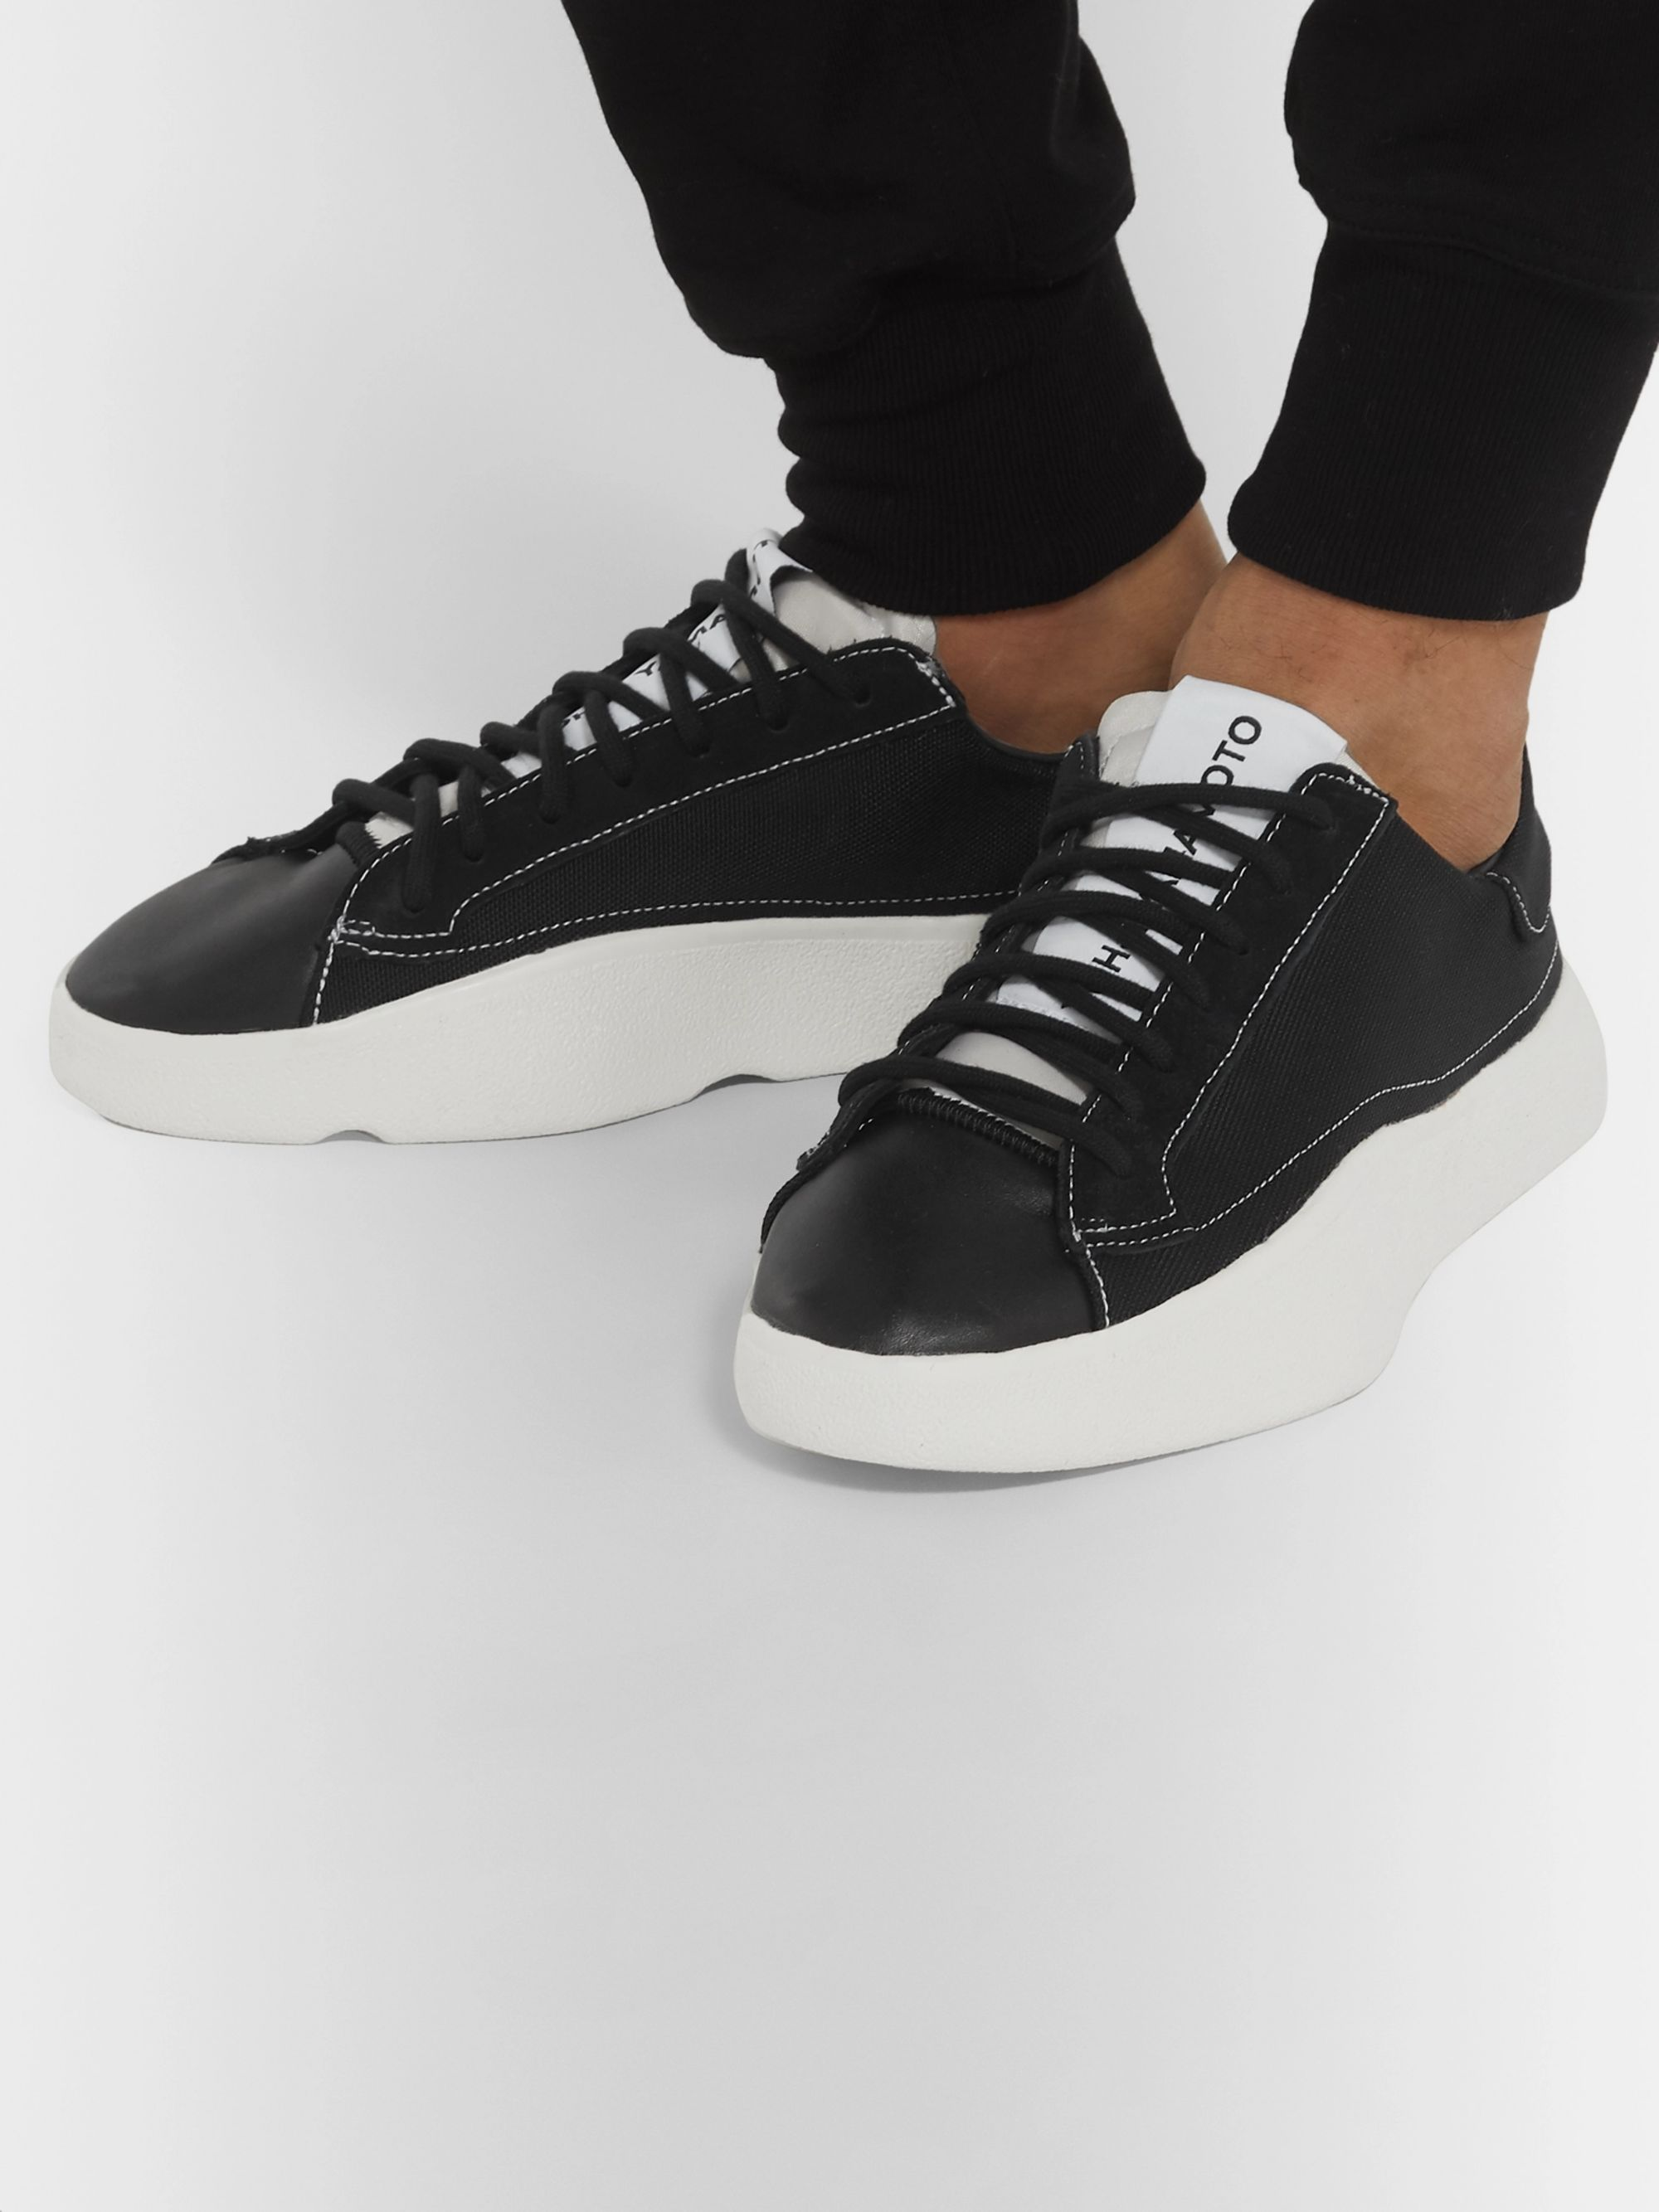 Y-3 Tangutsu Canvas, Suede and Leather Sneakers